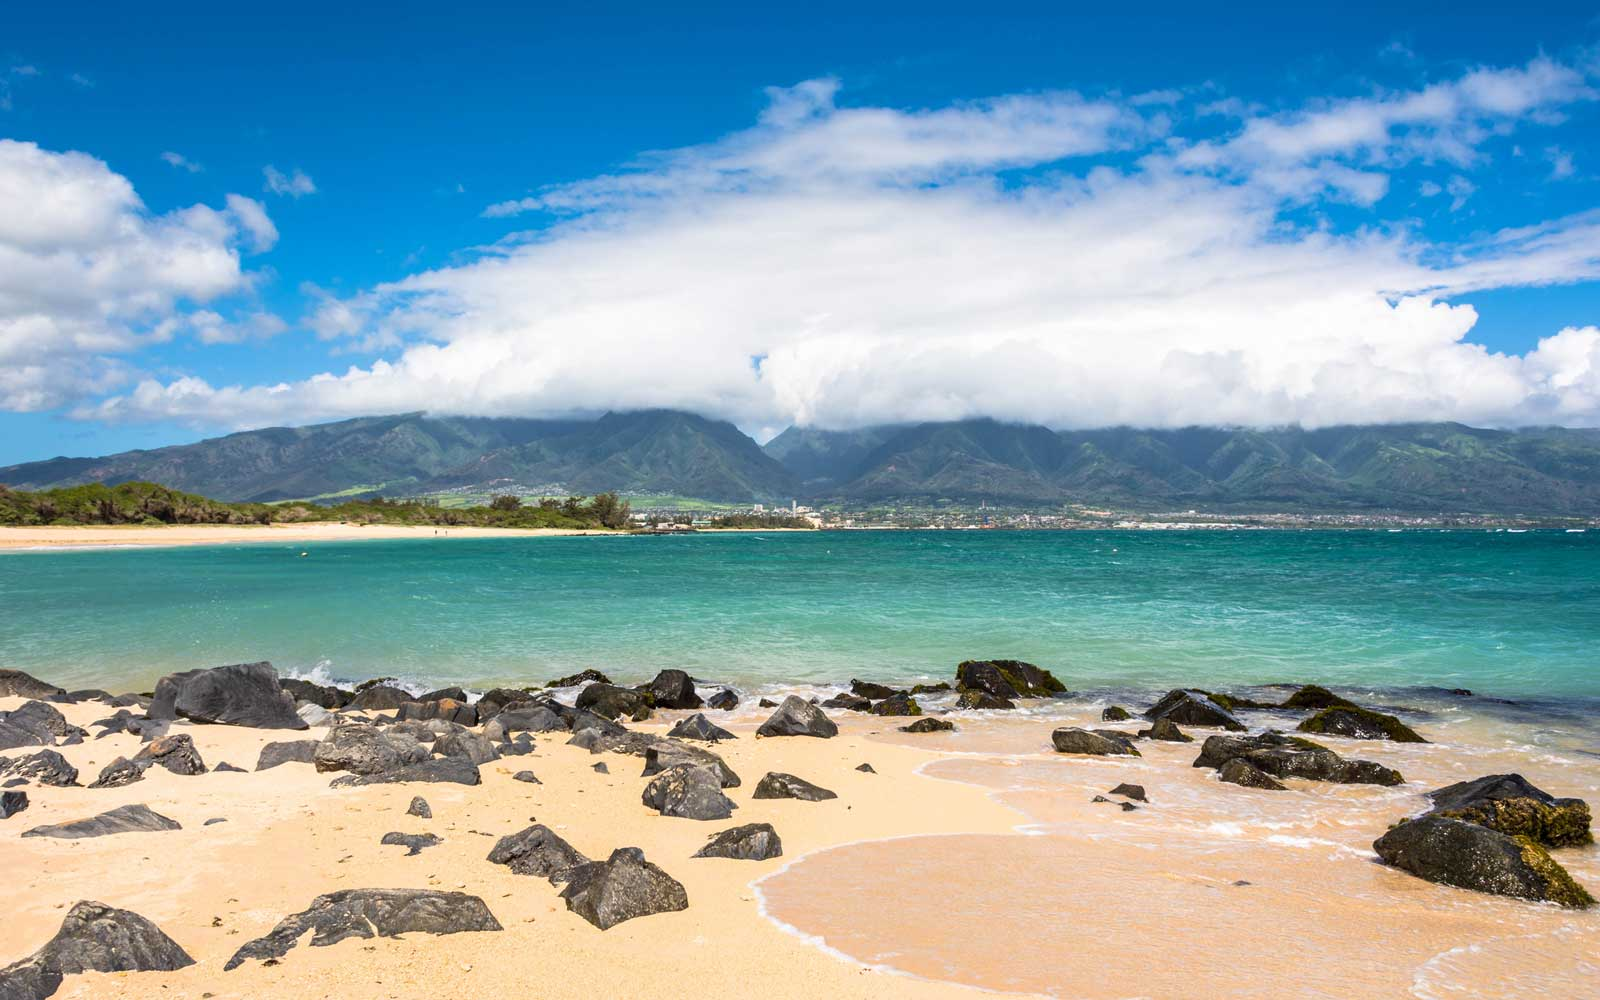 View of Kahului from Kanaha Beach in Maui